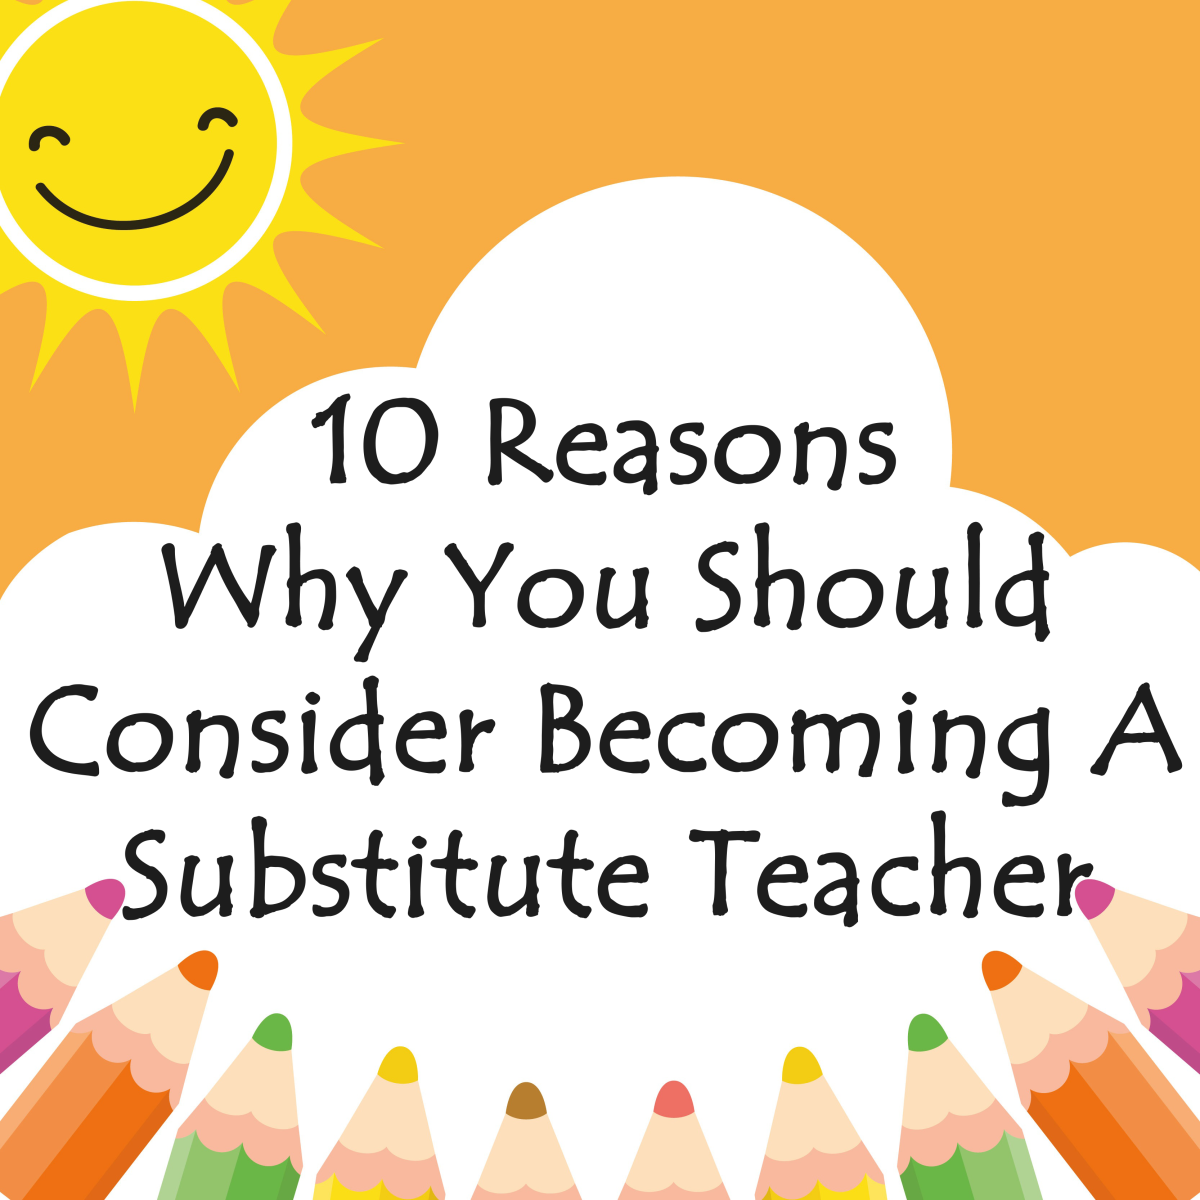 10 Reasons Why You Should Consider Becoming A Substitute Teacher